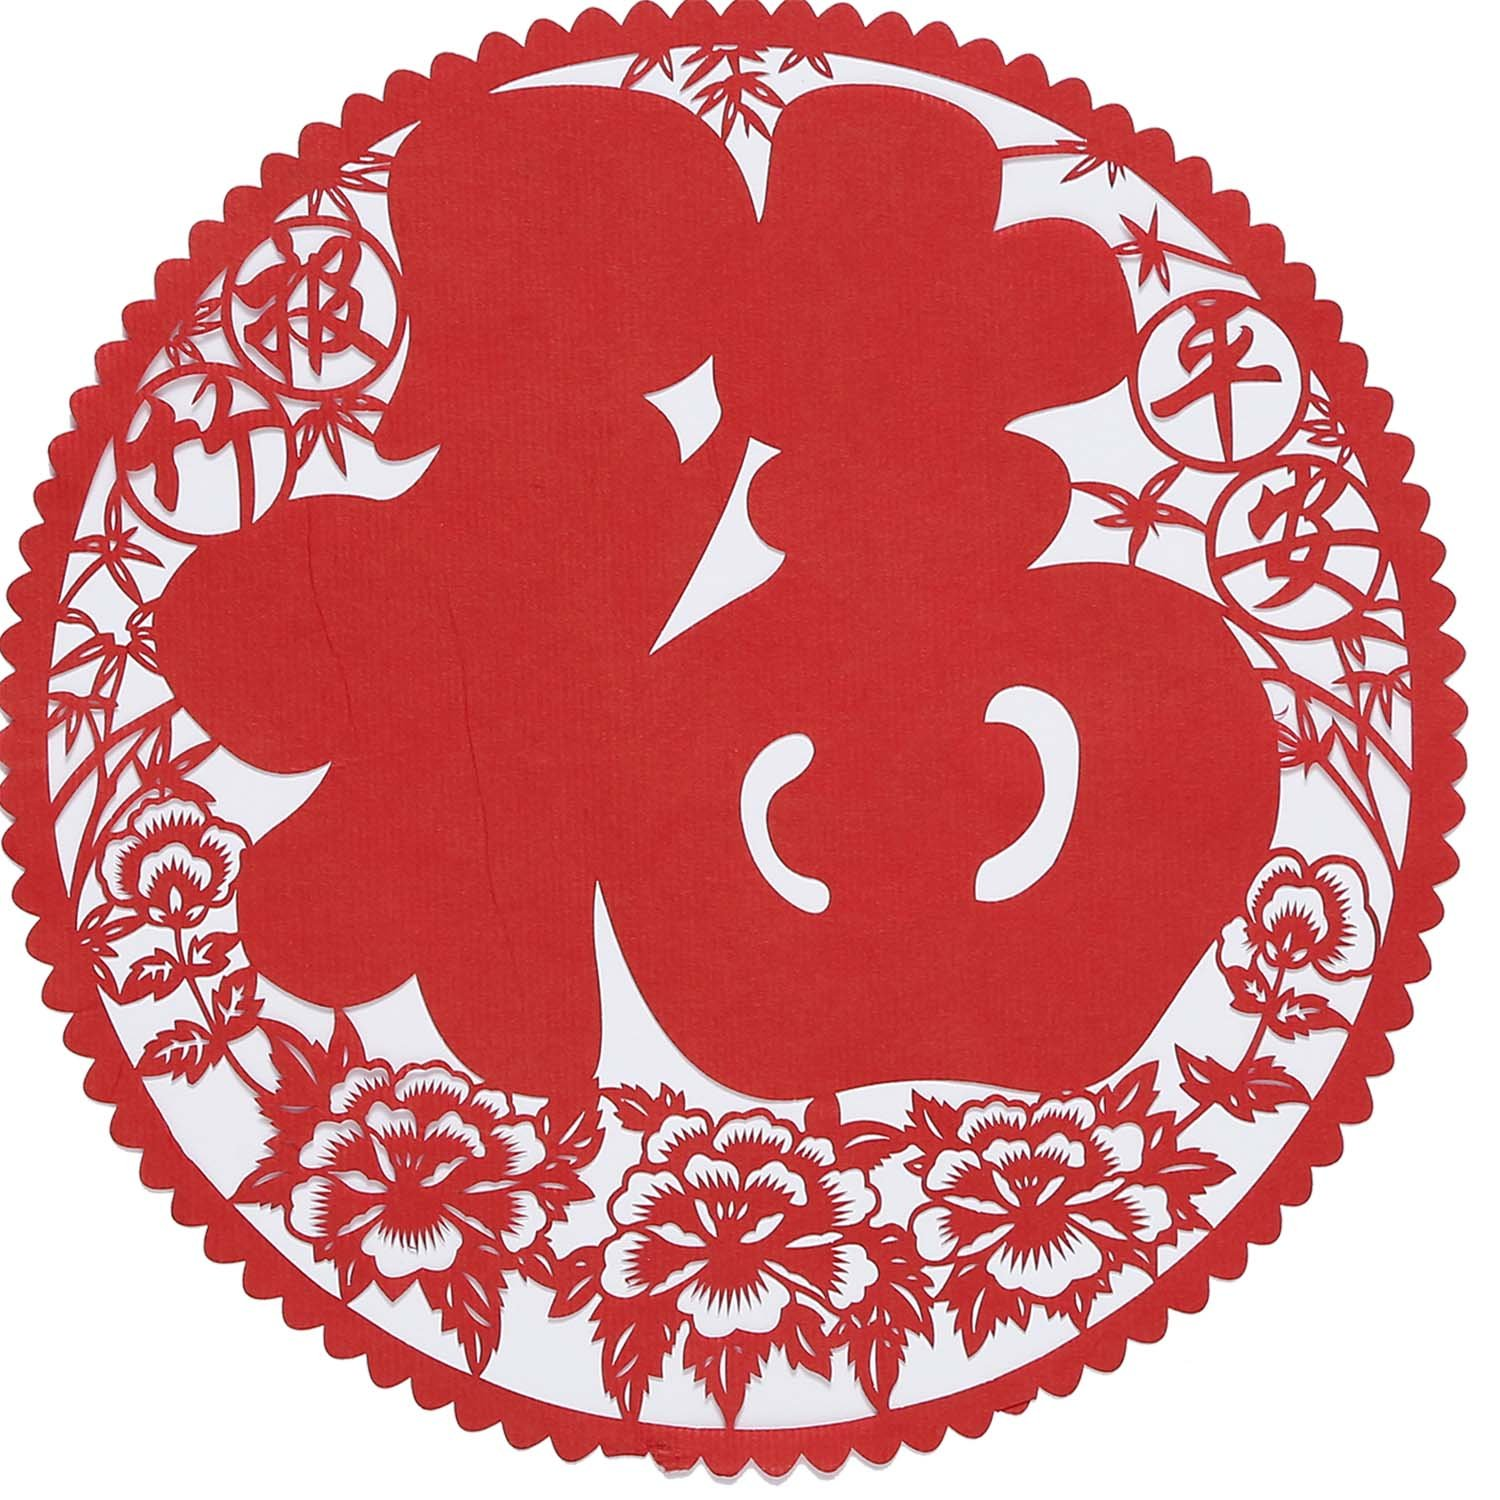 chinese paper cutting templates dragon - top result 50 new chinese paper cutting templates dragon